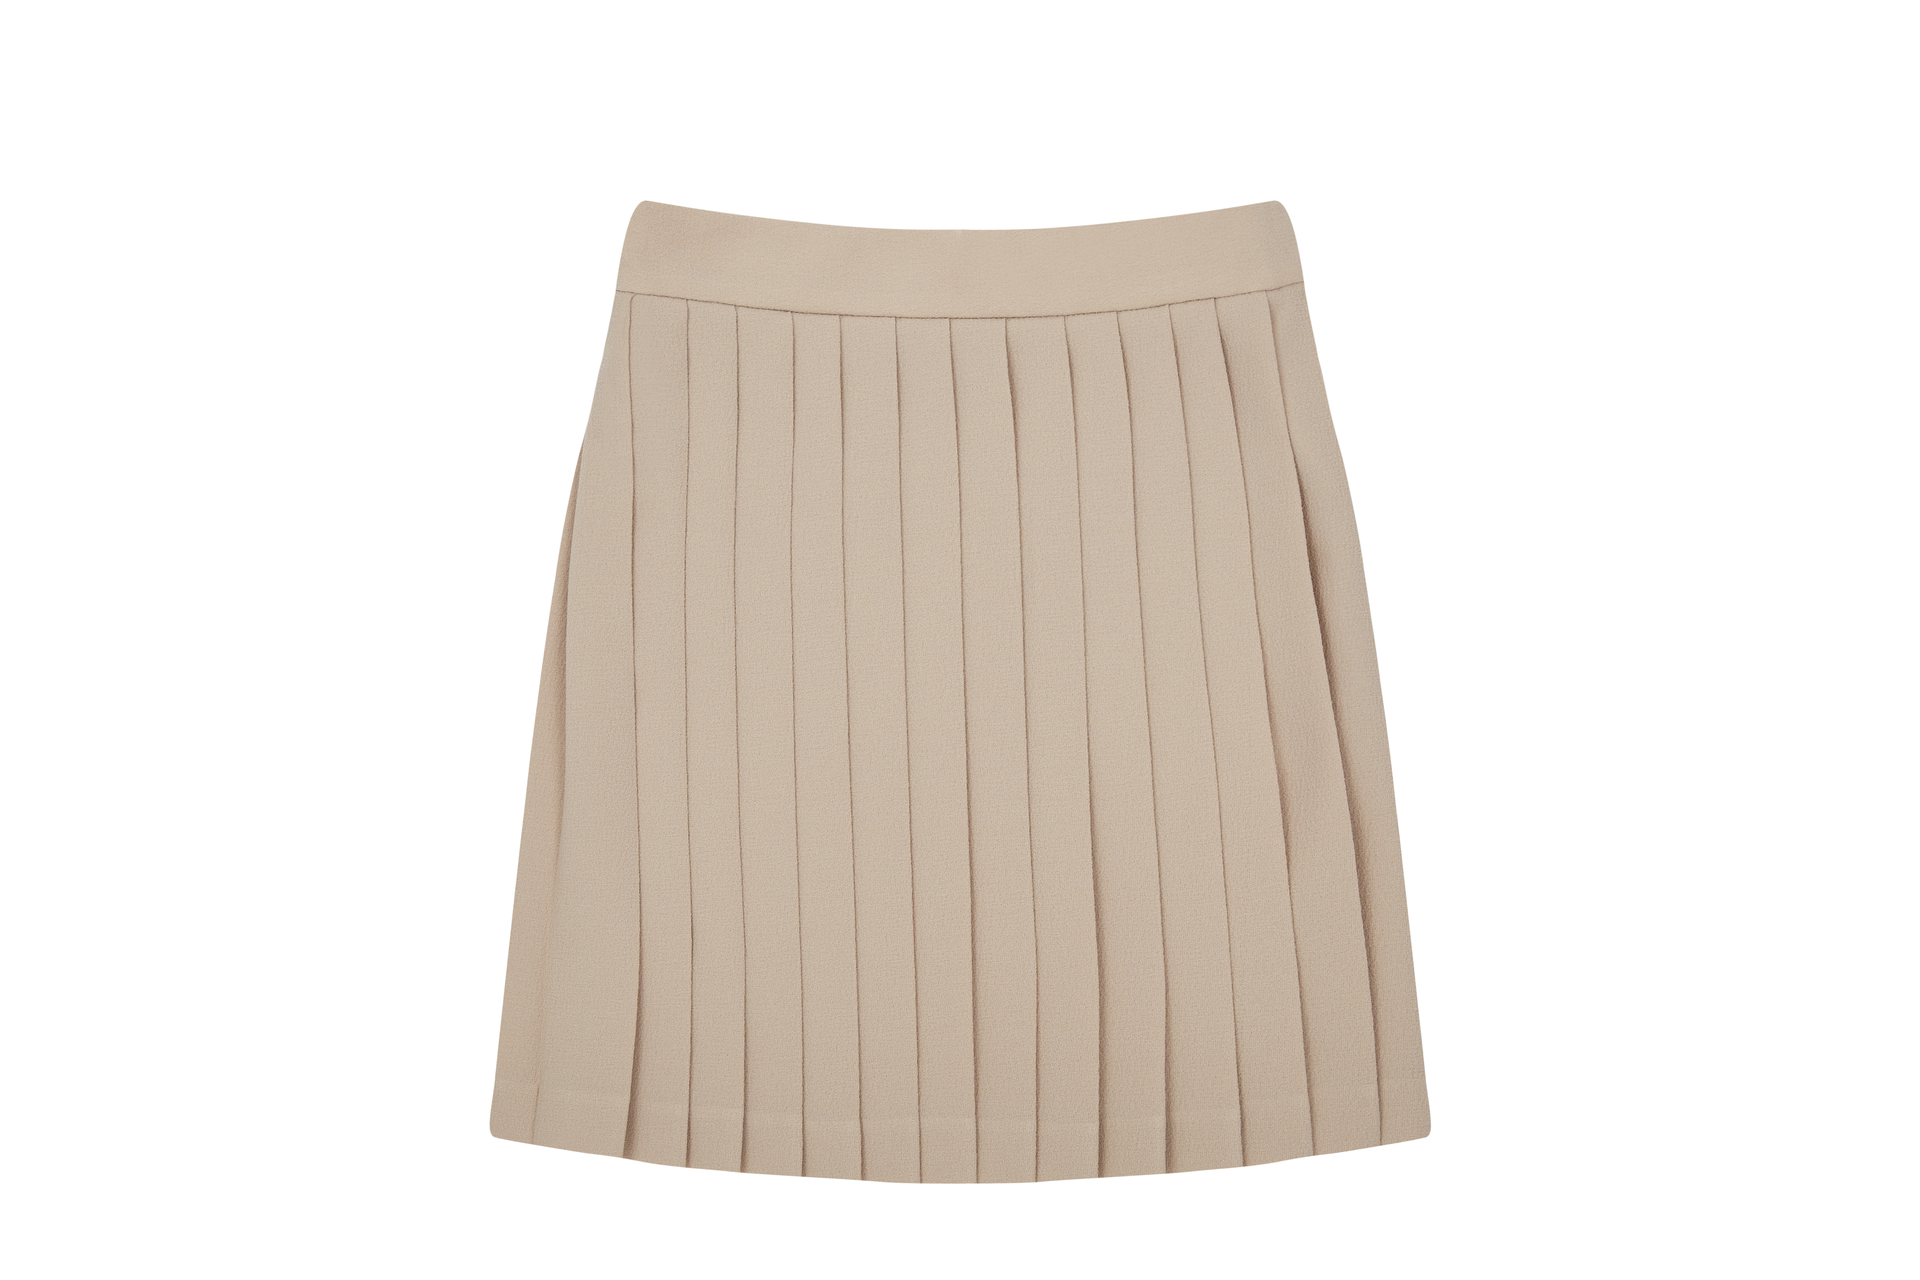 72dpi-23911976fe-9.-BY-JOHNNY,-Aimee-Pleat-Skirt-Nude,-290,-www.byjohnny.com.au